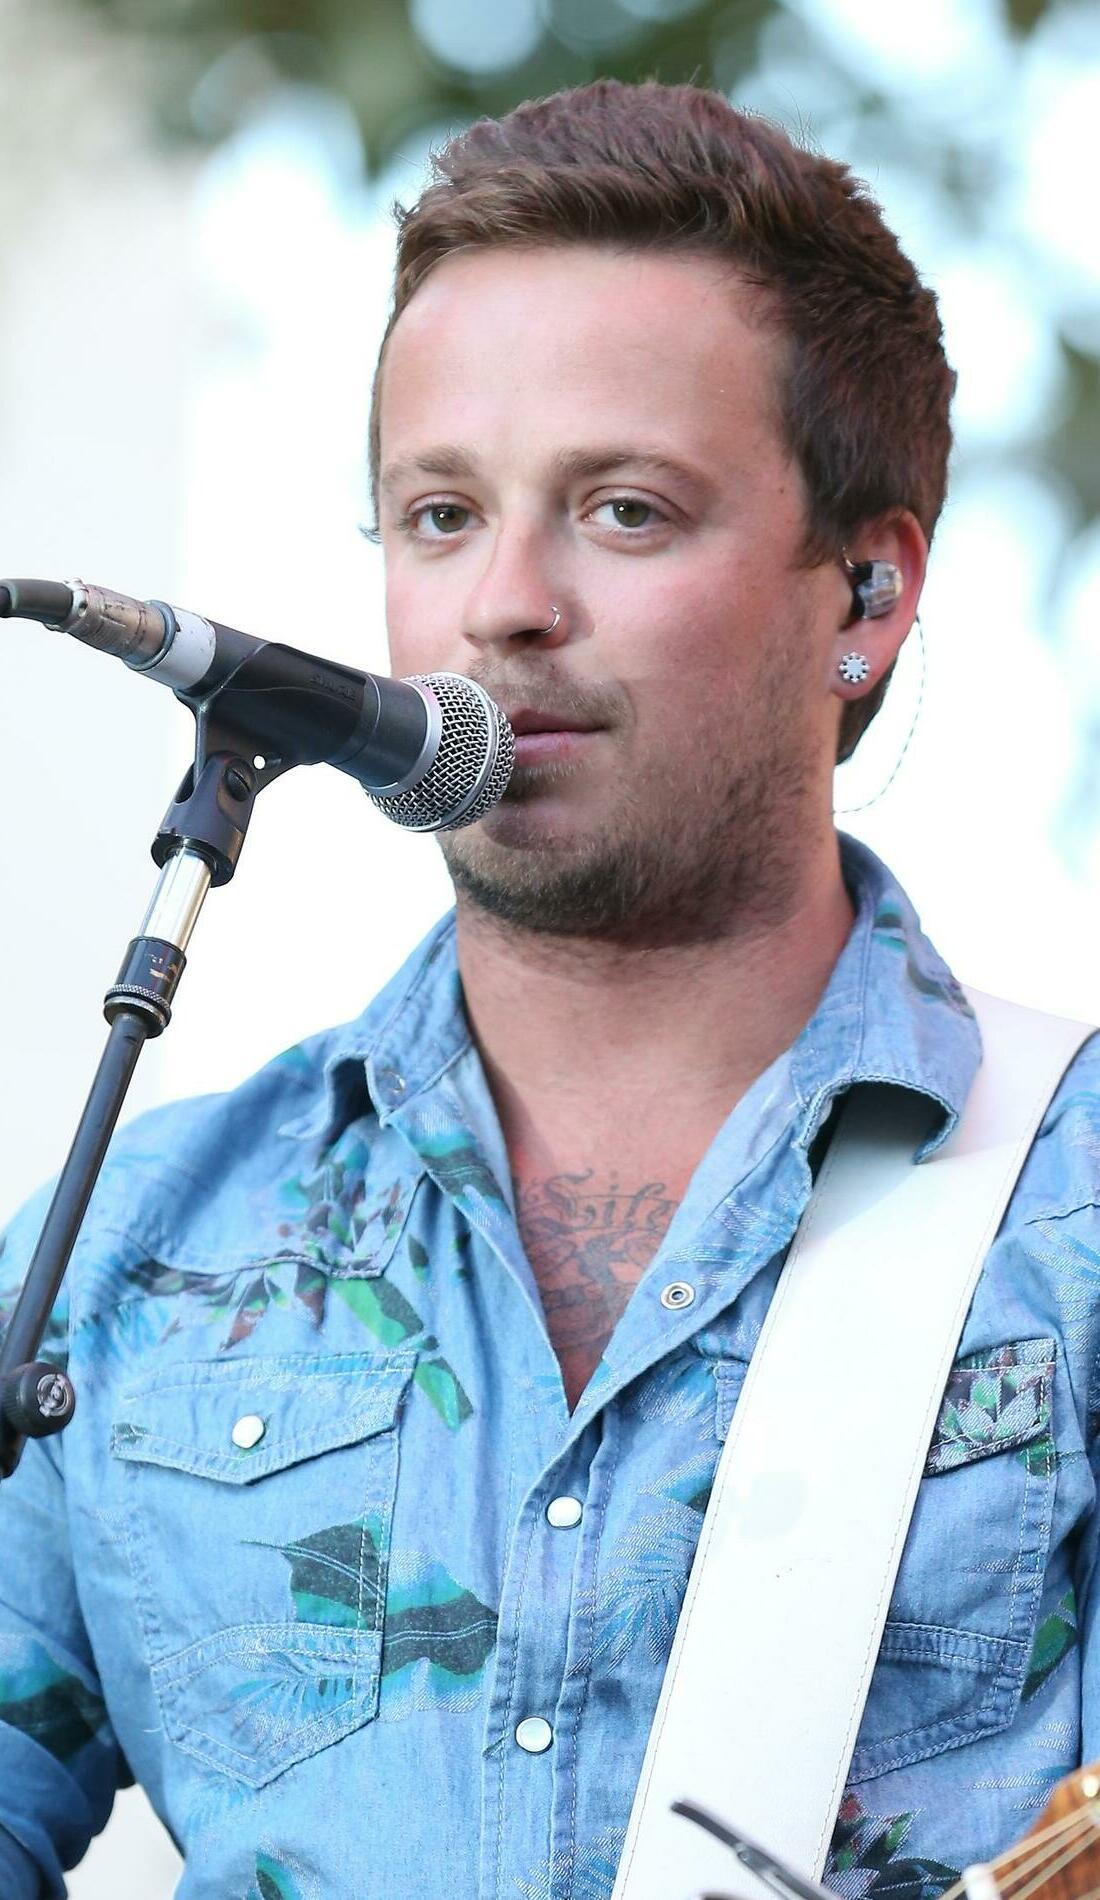 A Love and Theft live event